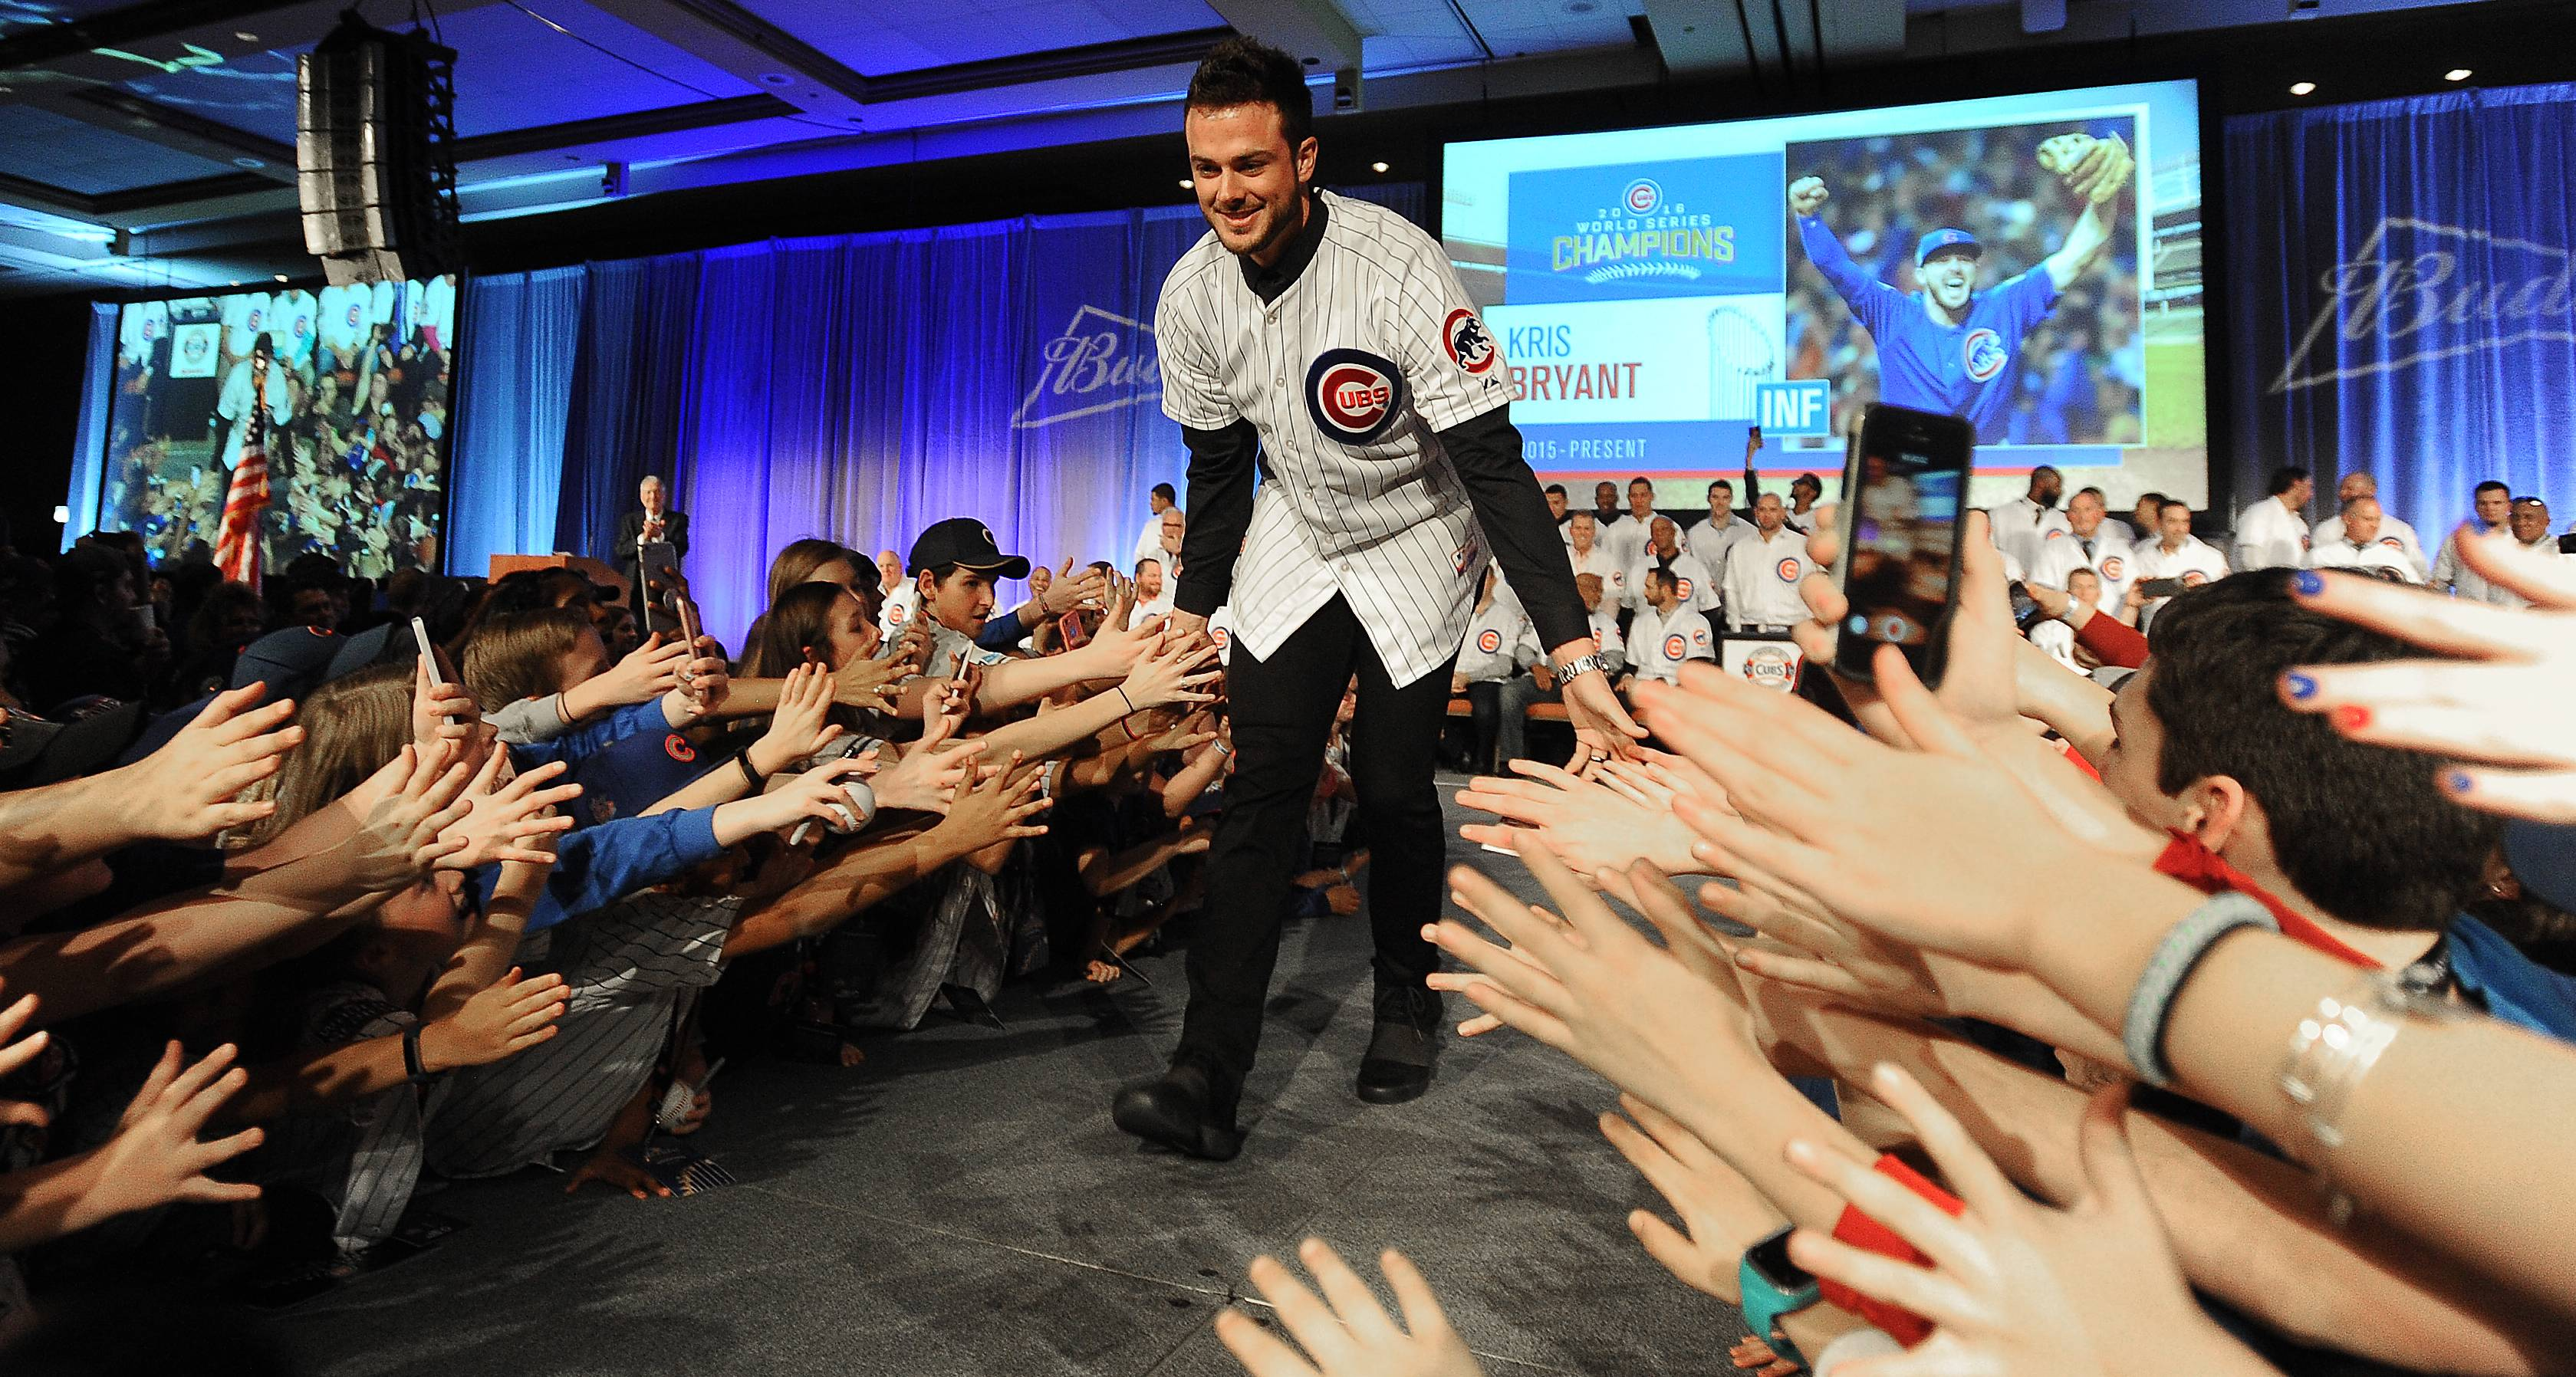 Chicago Cubs player Kris Bryant gets down low with the fans as he takes the stage at the 32nd annual Cubs Convention in Chicago on Friday.